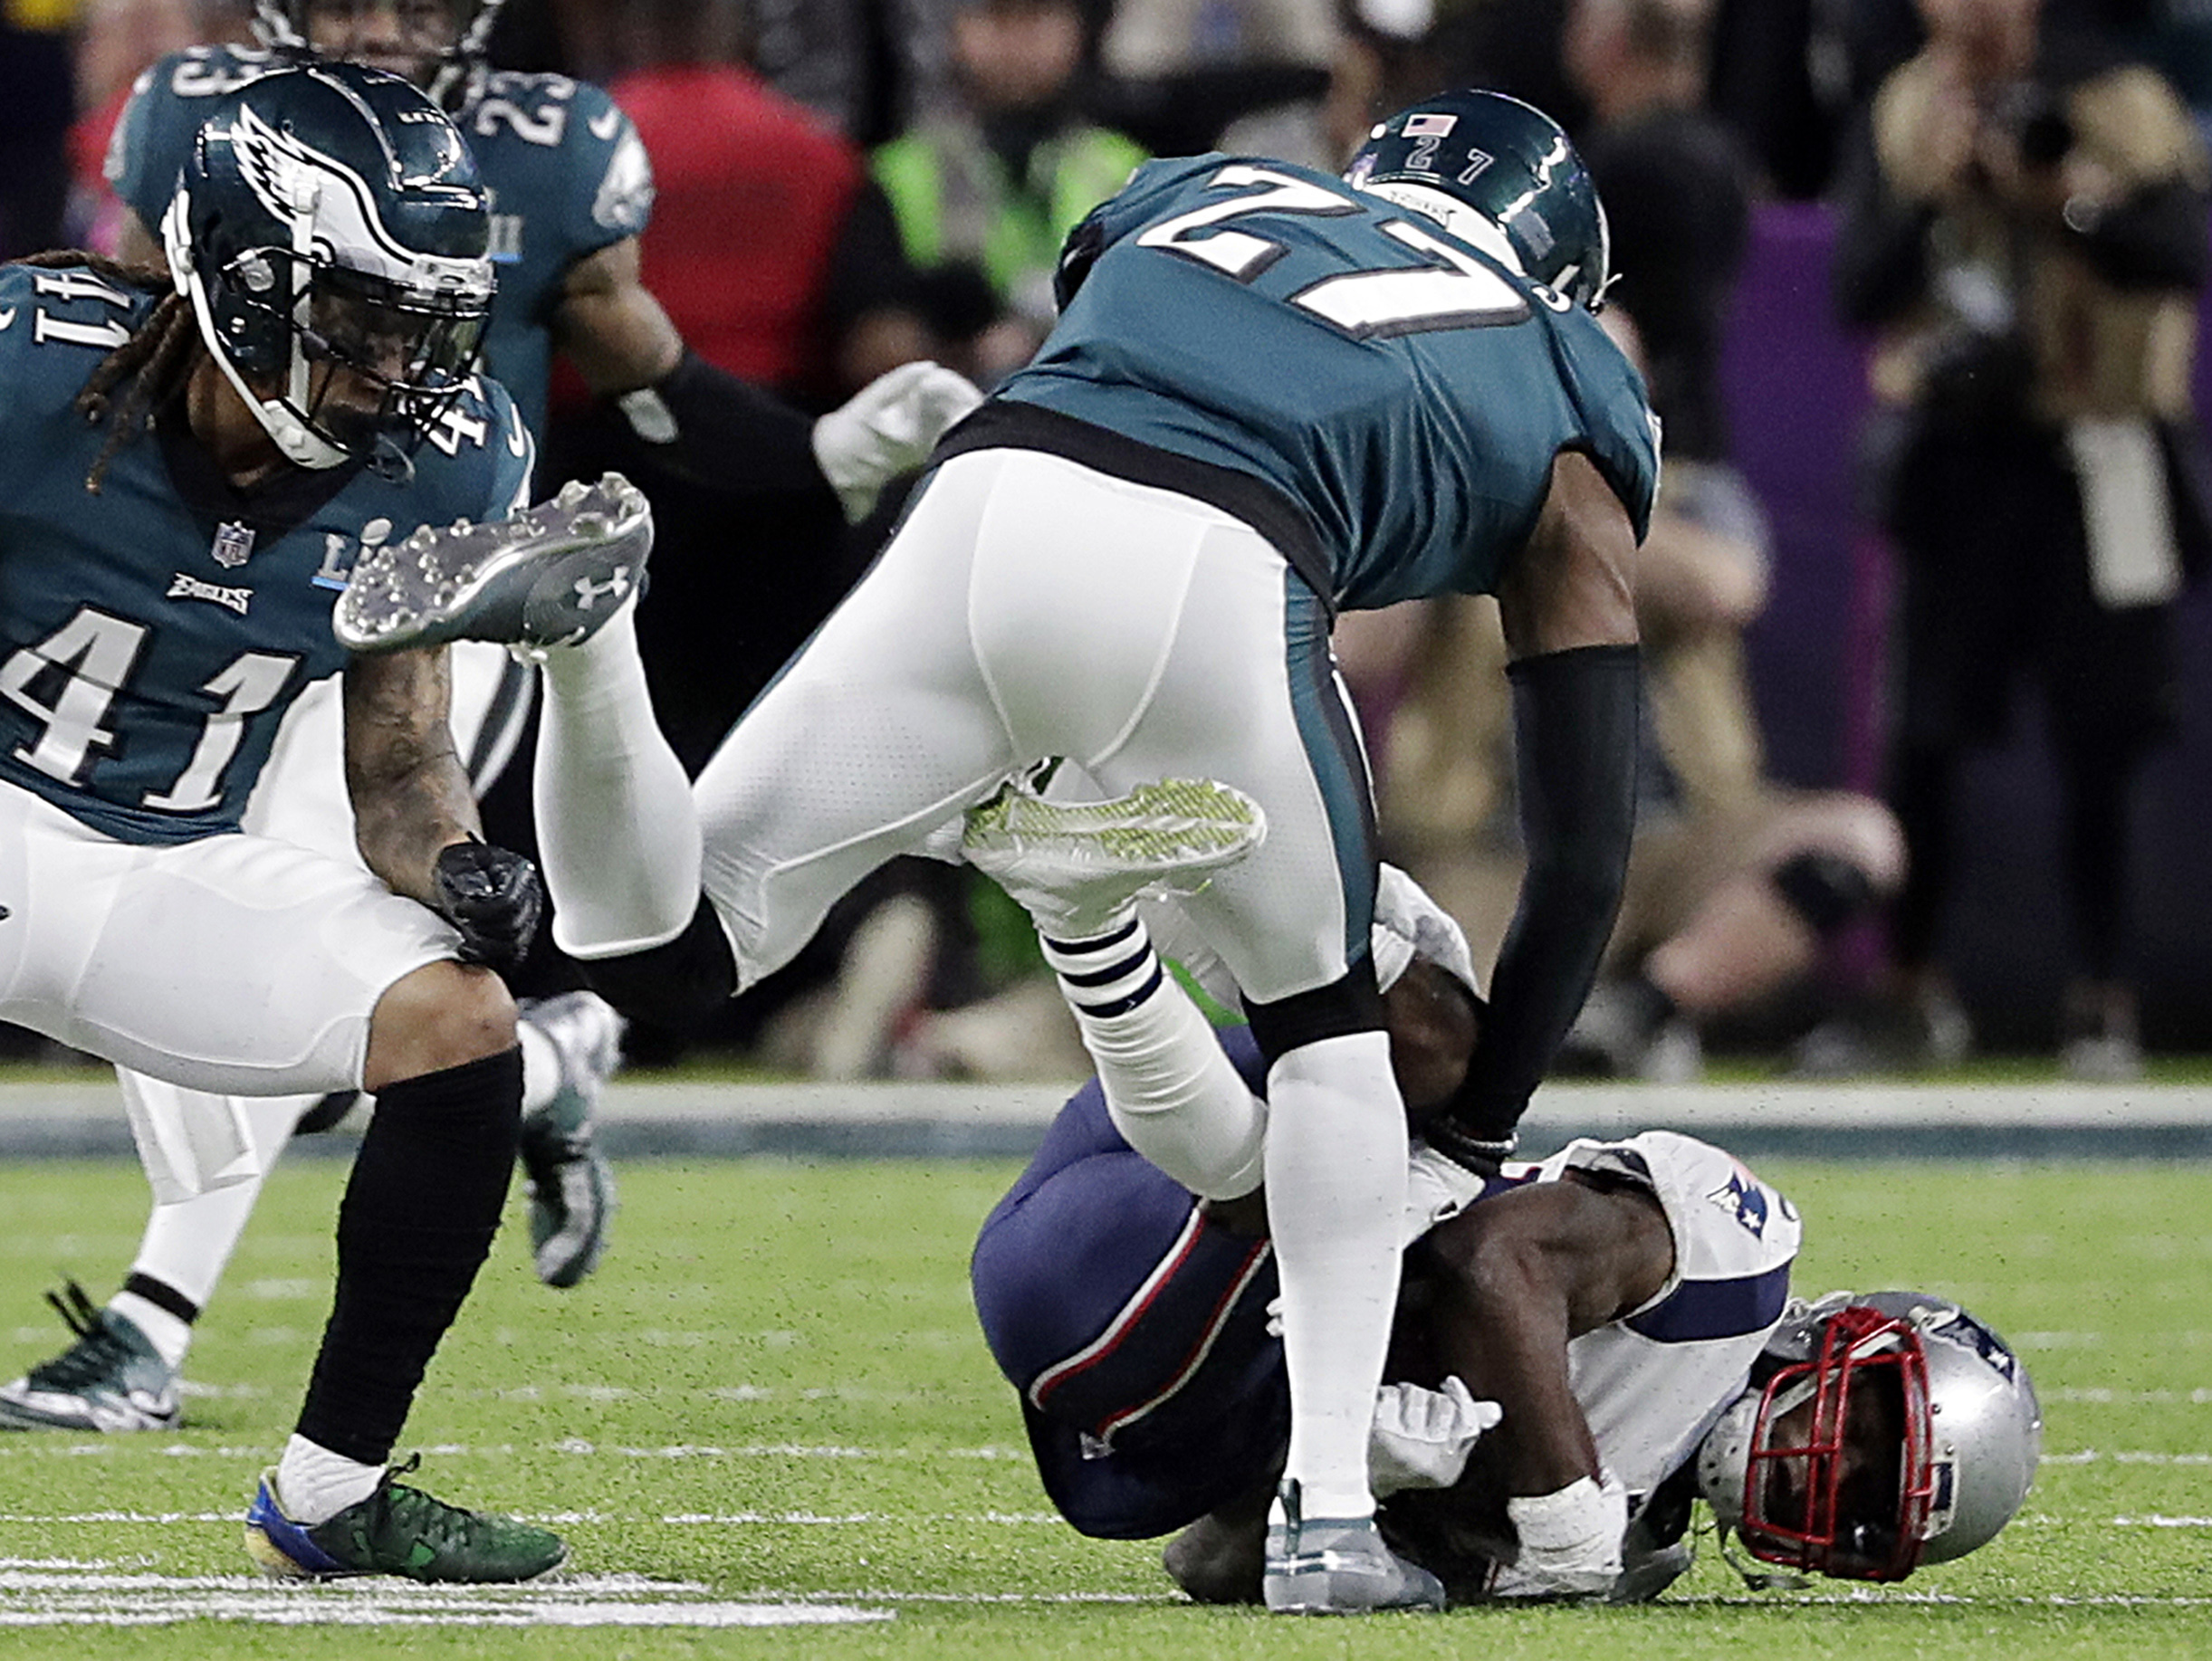 <div class='meta'><div class='origin-logo' data-origin='AP'></div><span class='caption-text' data-credit='AP Photo/Tony Gutierrez'>New England Patriots wide receiver Brandin Cooks (14), falls after colliding with Philadelphia Eagles strong safety Malcolm Jenkins (27).</span></div>